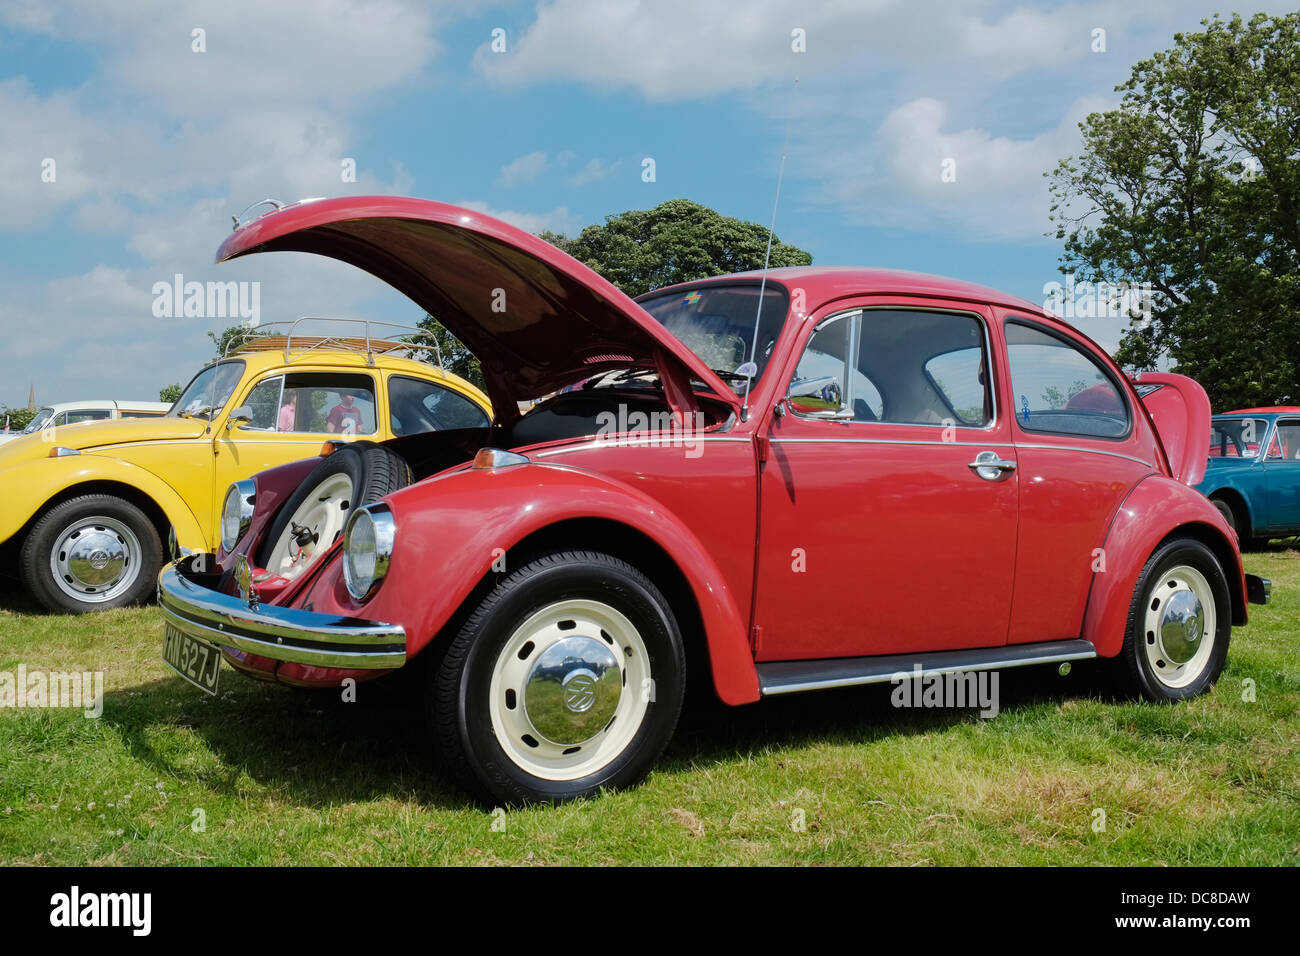 Vw beetle 1970 stock photos vw beetle 1970 stock images for Credit auto garage volkswagen